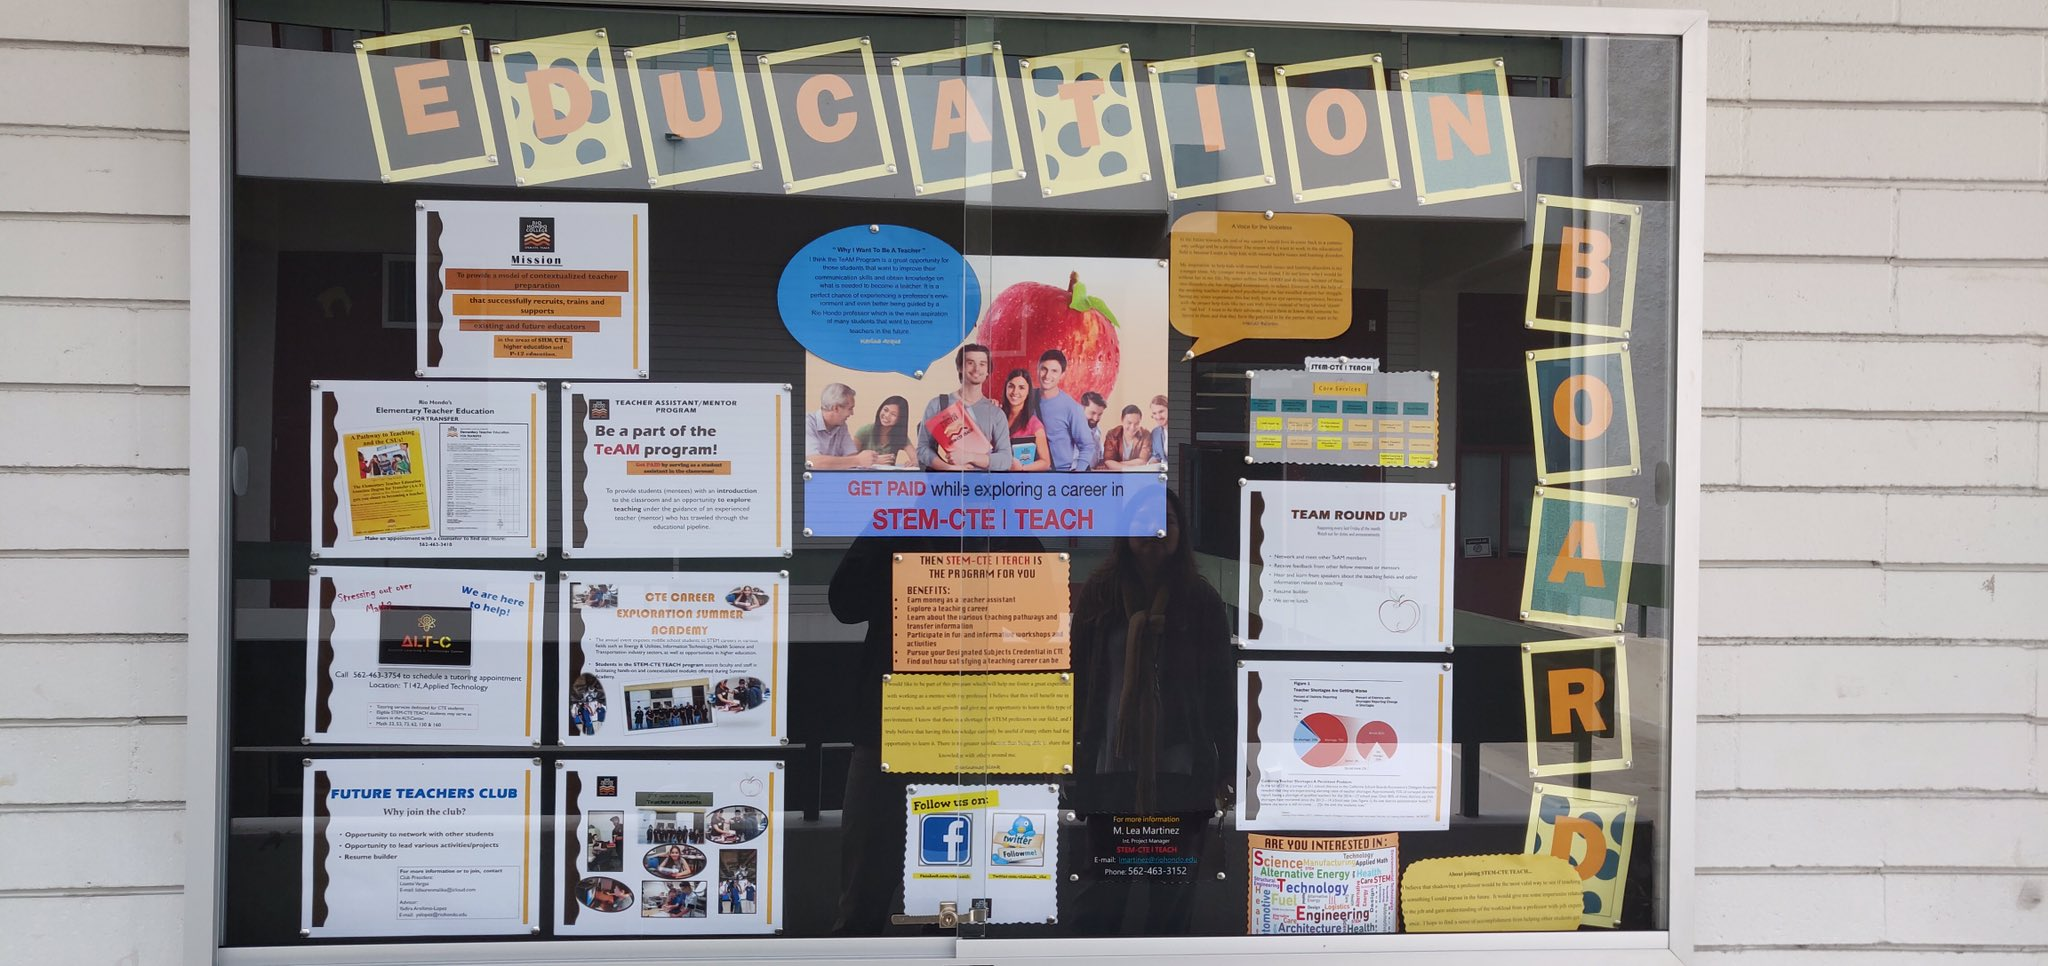 Our Education Board Is Up!